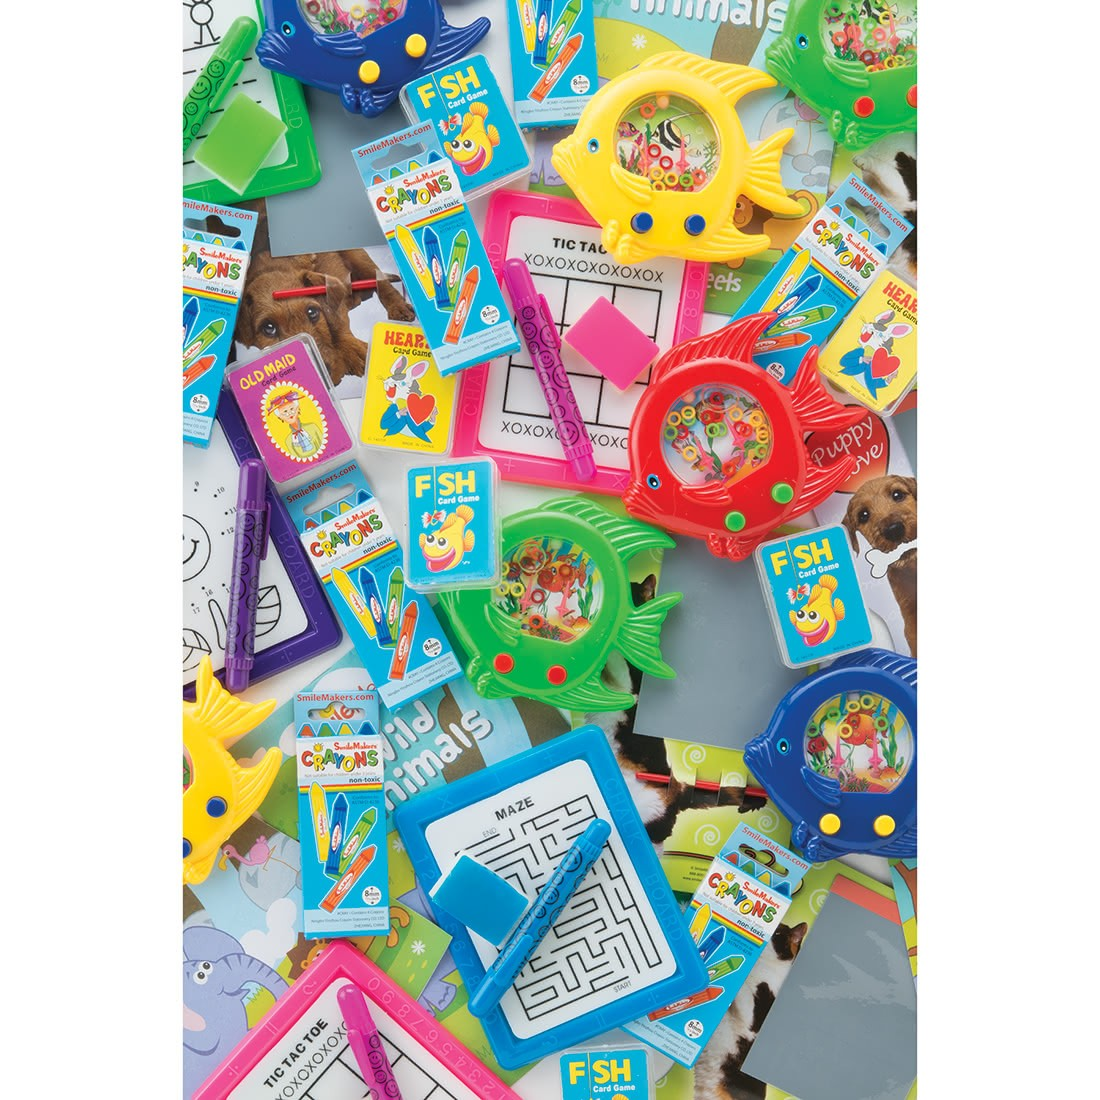 Kids Activity Treasure Chest Refill [image]